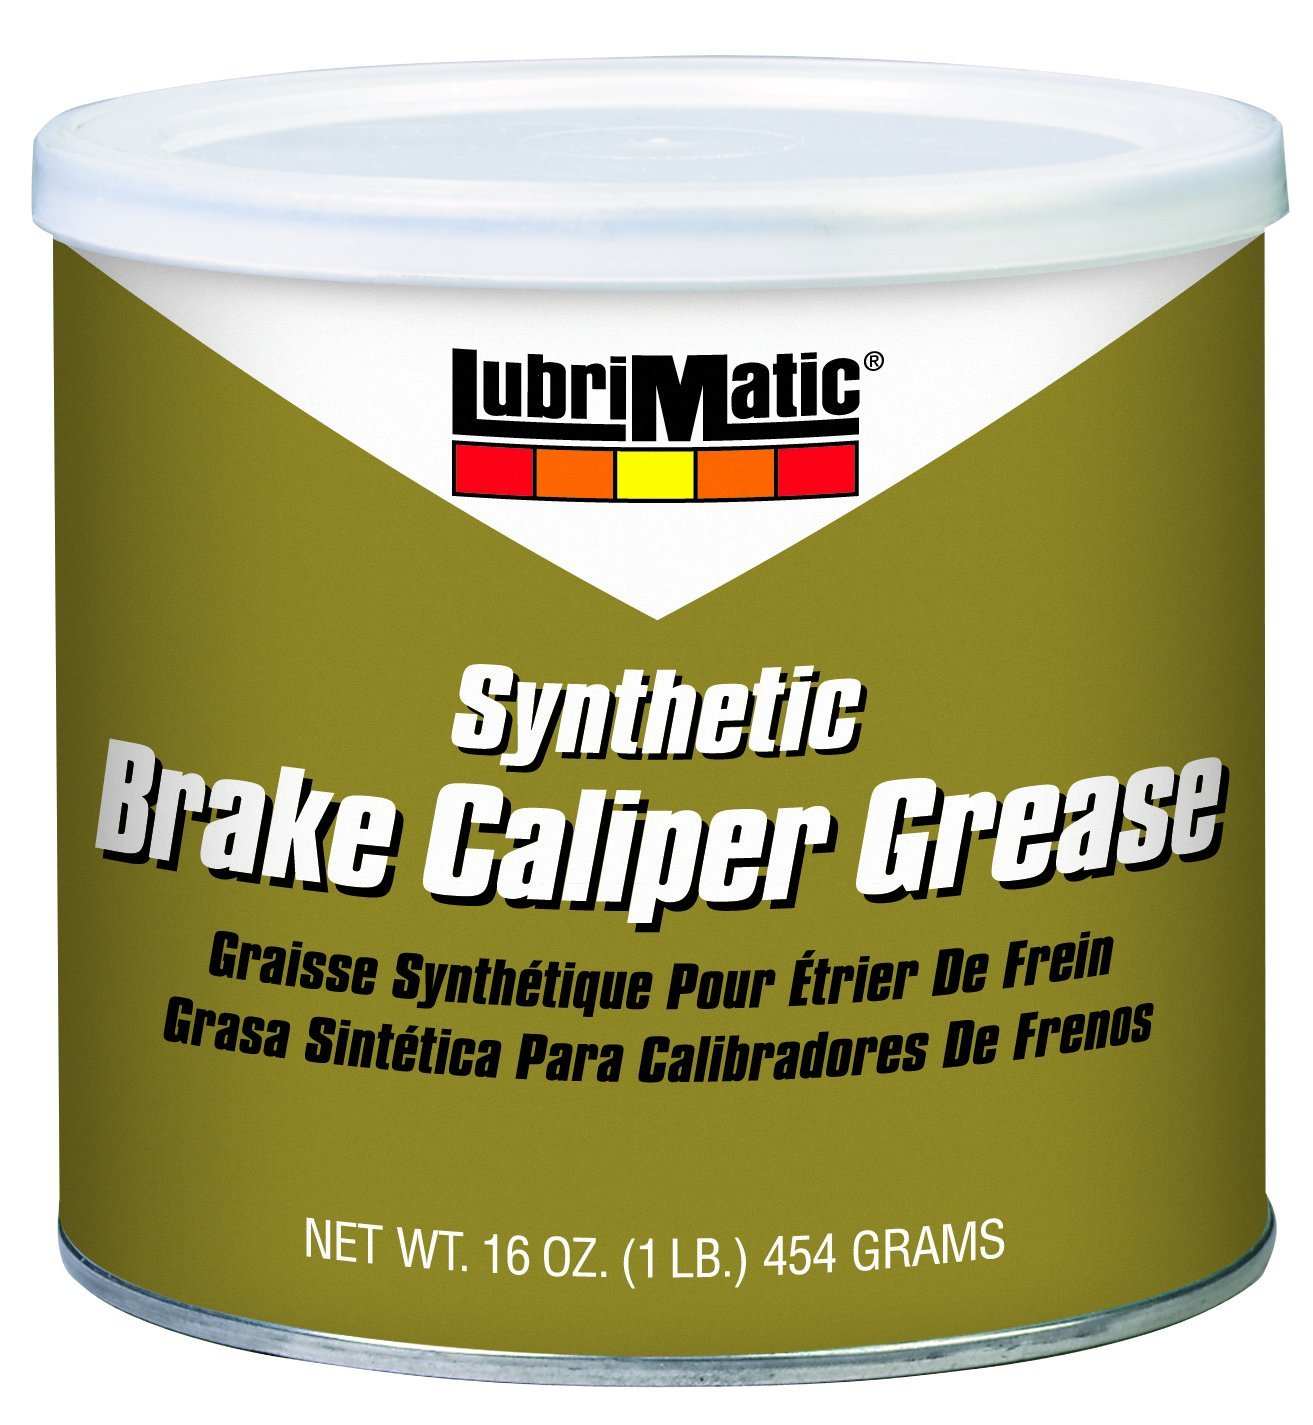 Lubrimatic 11752 Synthetic Brake Caliper Grease, 16 oz. Can by Lubrimatic